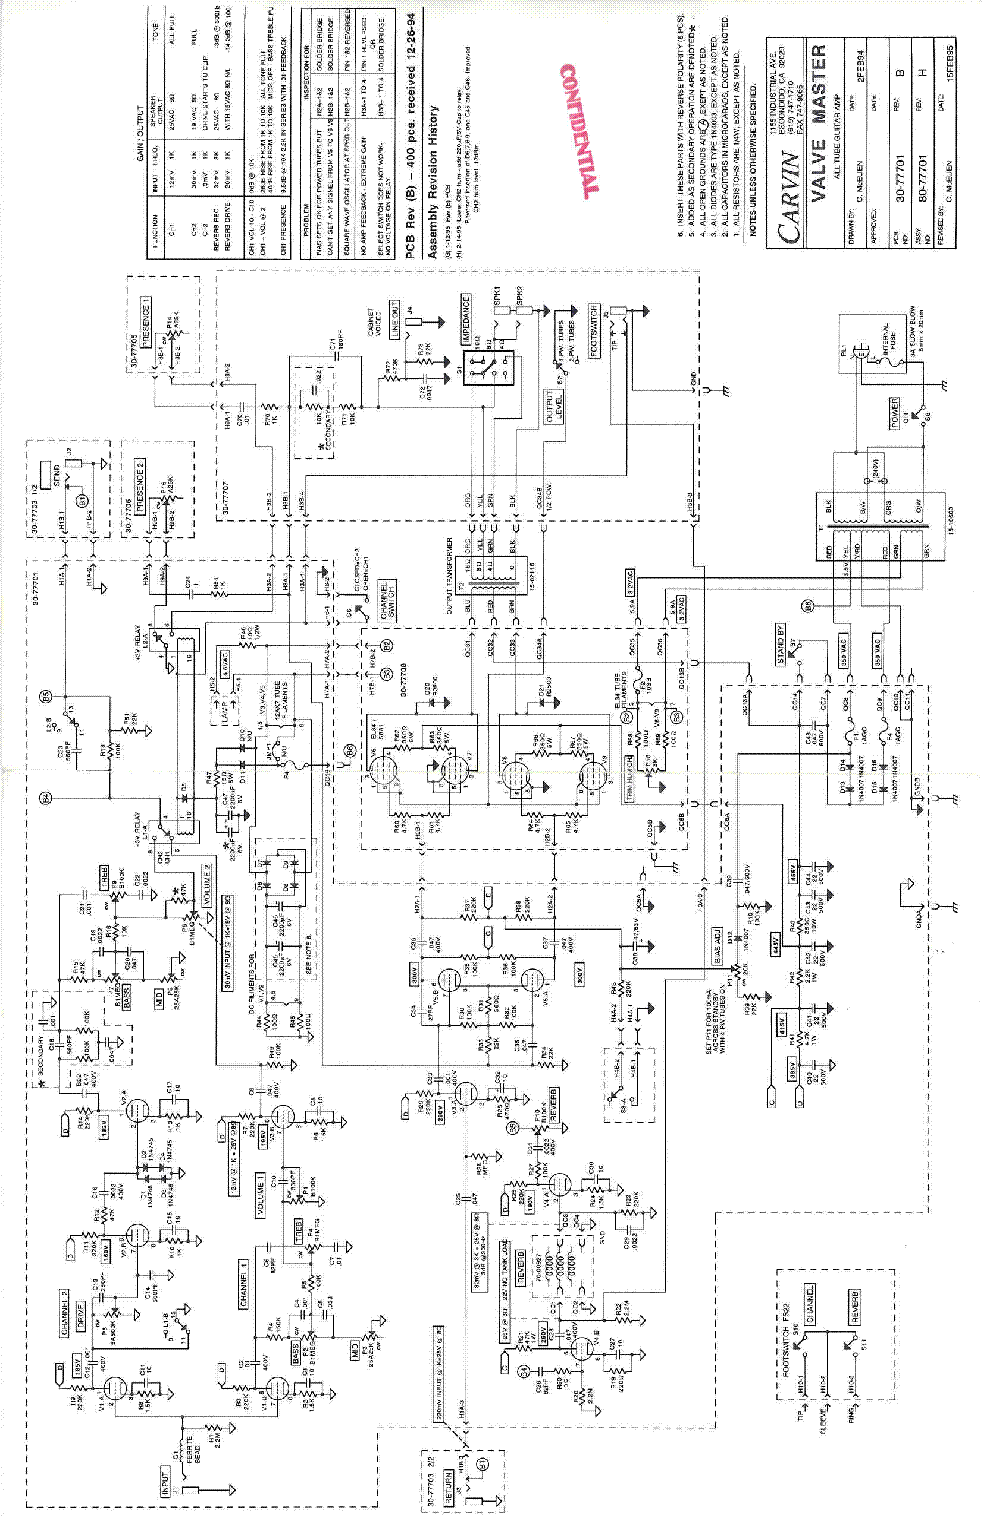 carvin valve master sch service manual download  schematics  eeprom  repair info for electronics